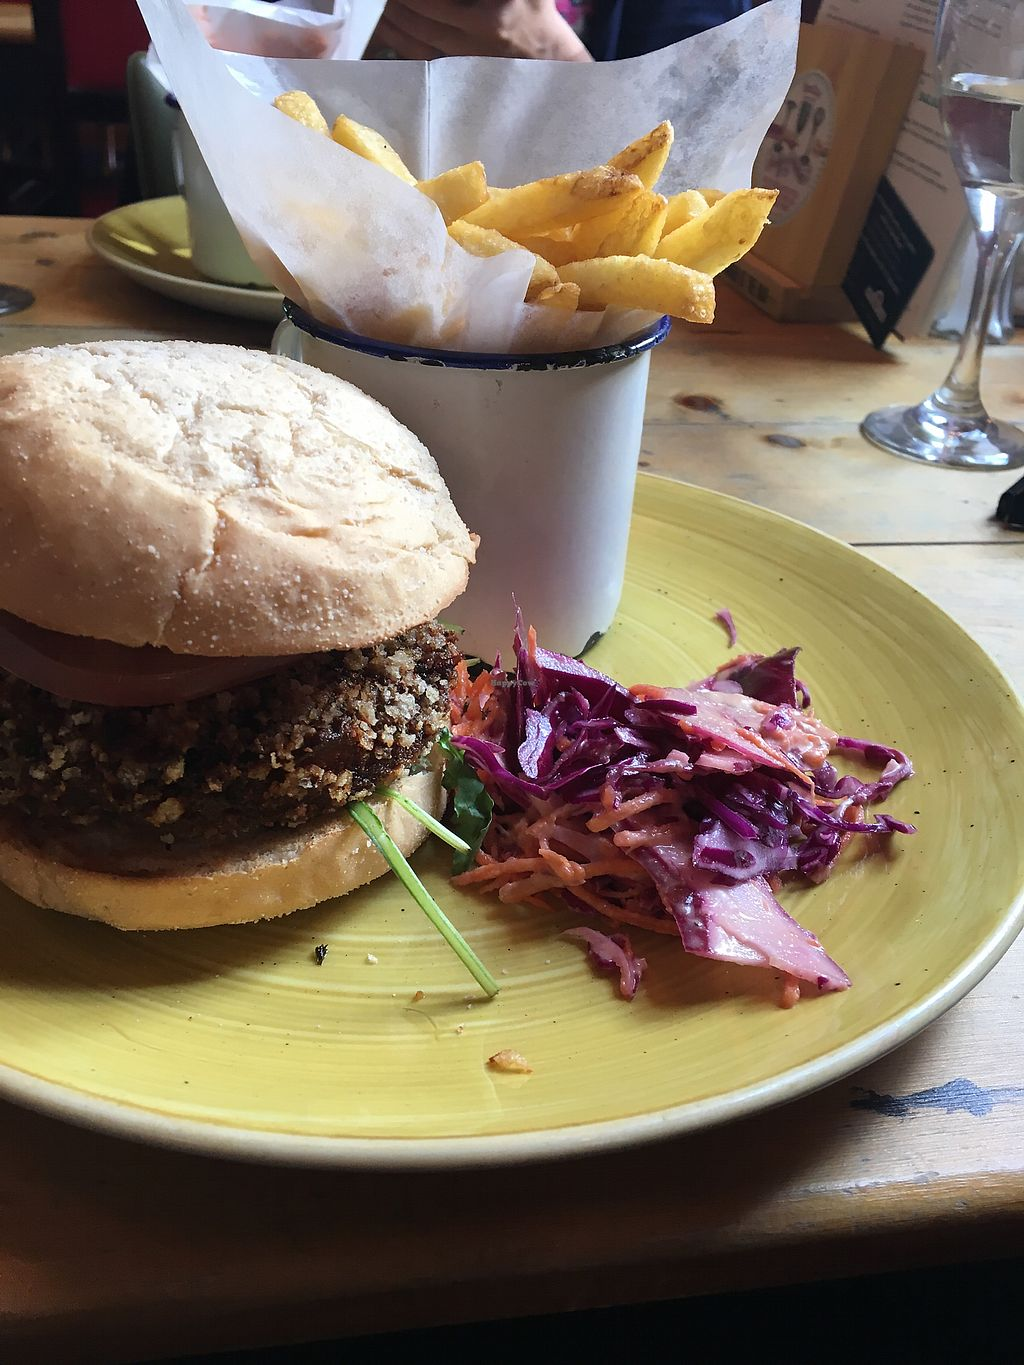 """Photo of Nautico Lounge  by <a href=""""/members/profile/Bafodelic"""">Bafodelic</a> <br/>Falafel burger  <br/> September 28, 2017  - <a href='/contact/abuse/image/77121/309373'>Report</a>"""